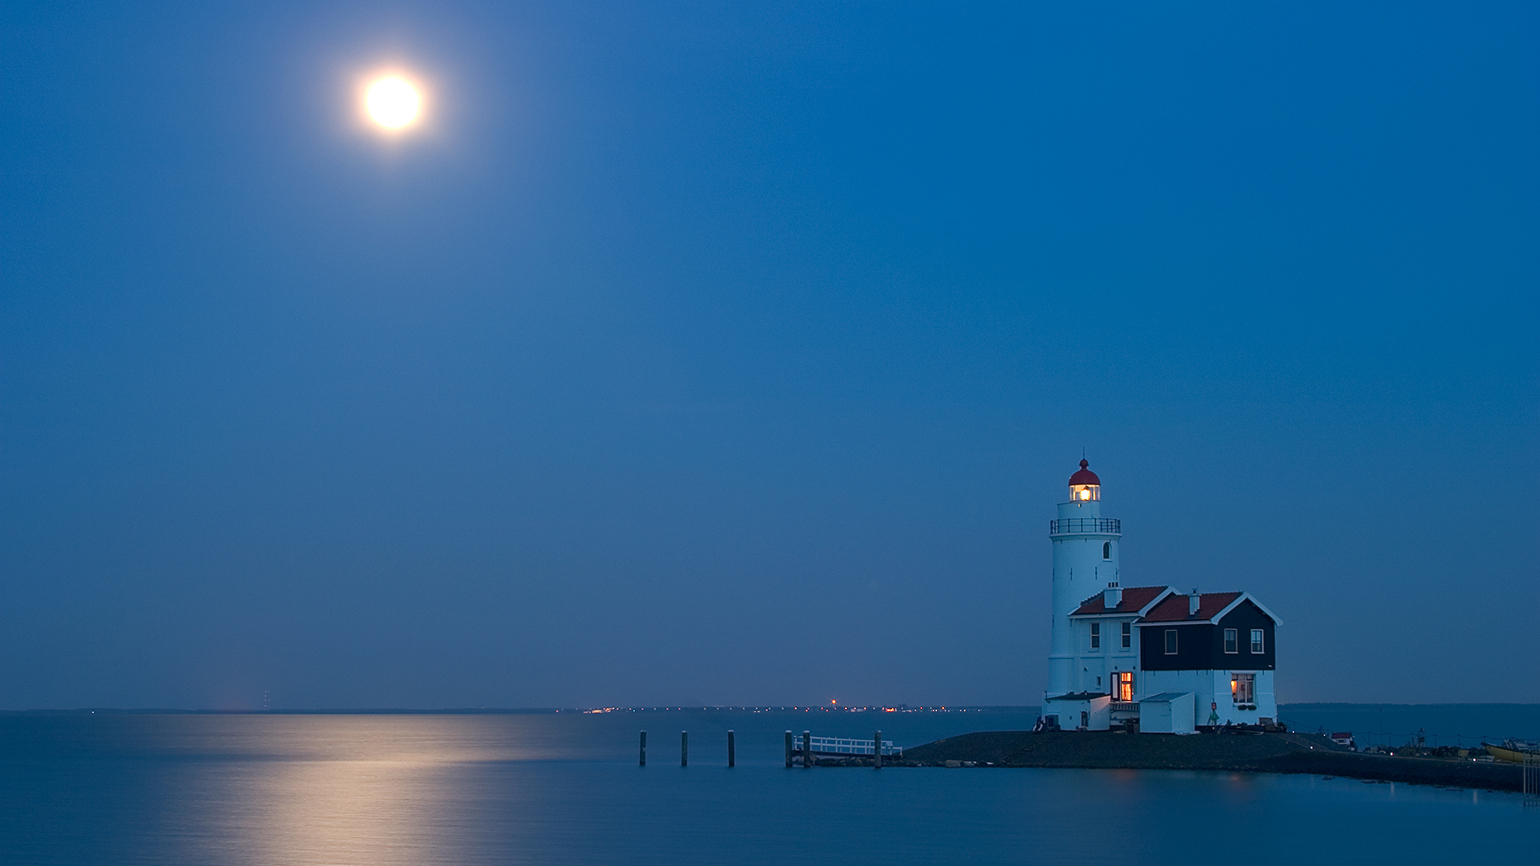 A lighthouse towers over a moonlit bay